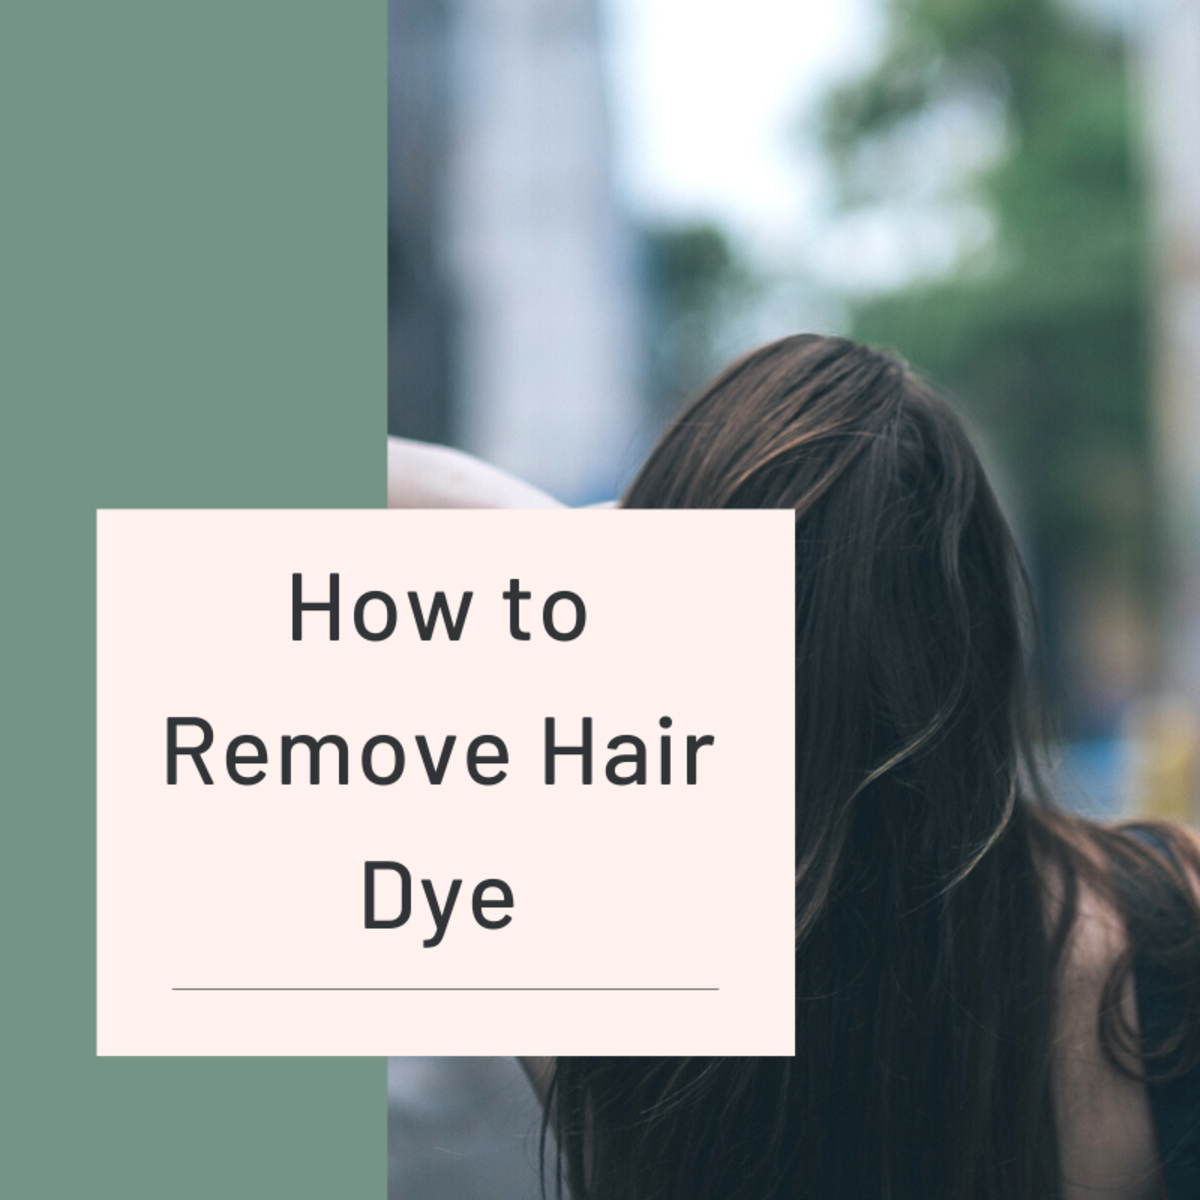 How to Remove Hair Dye